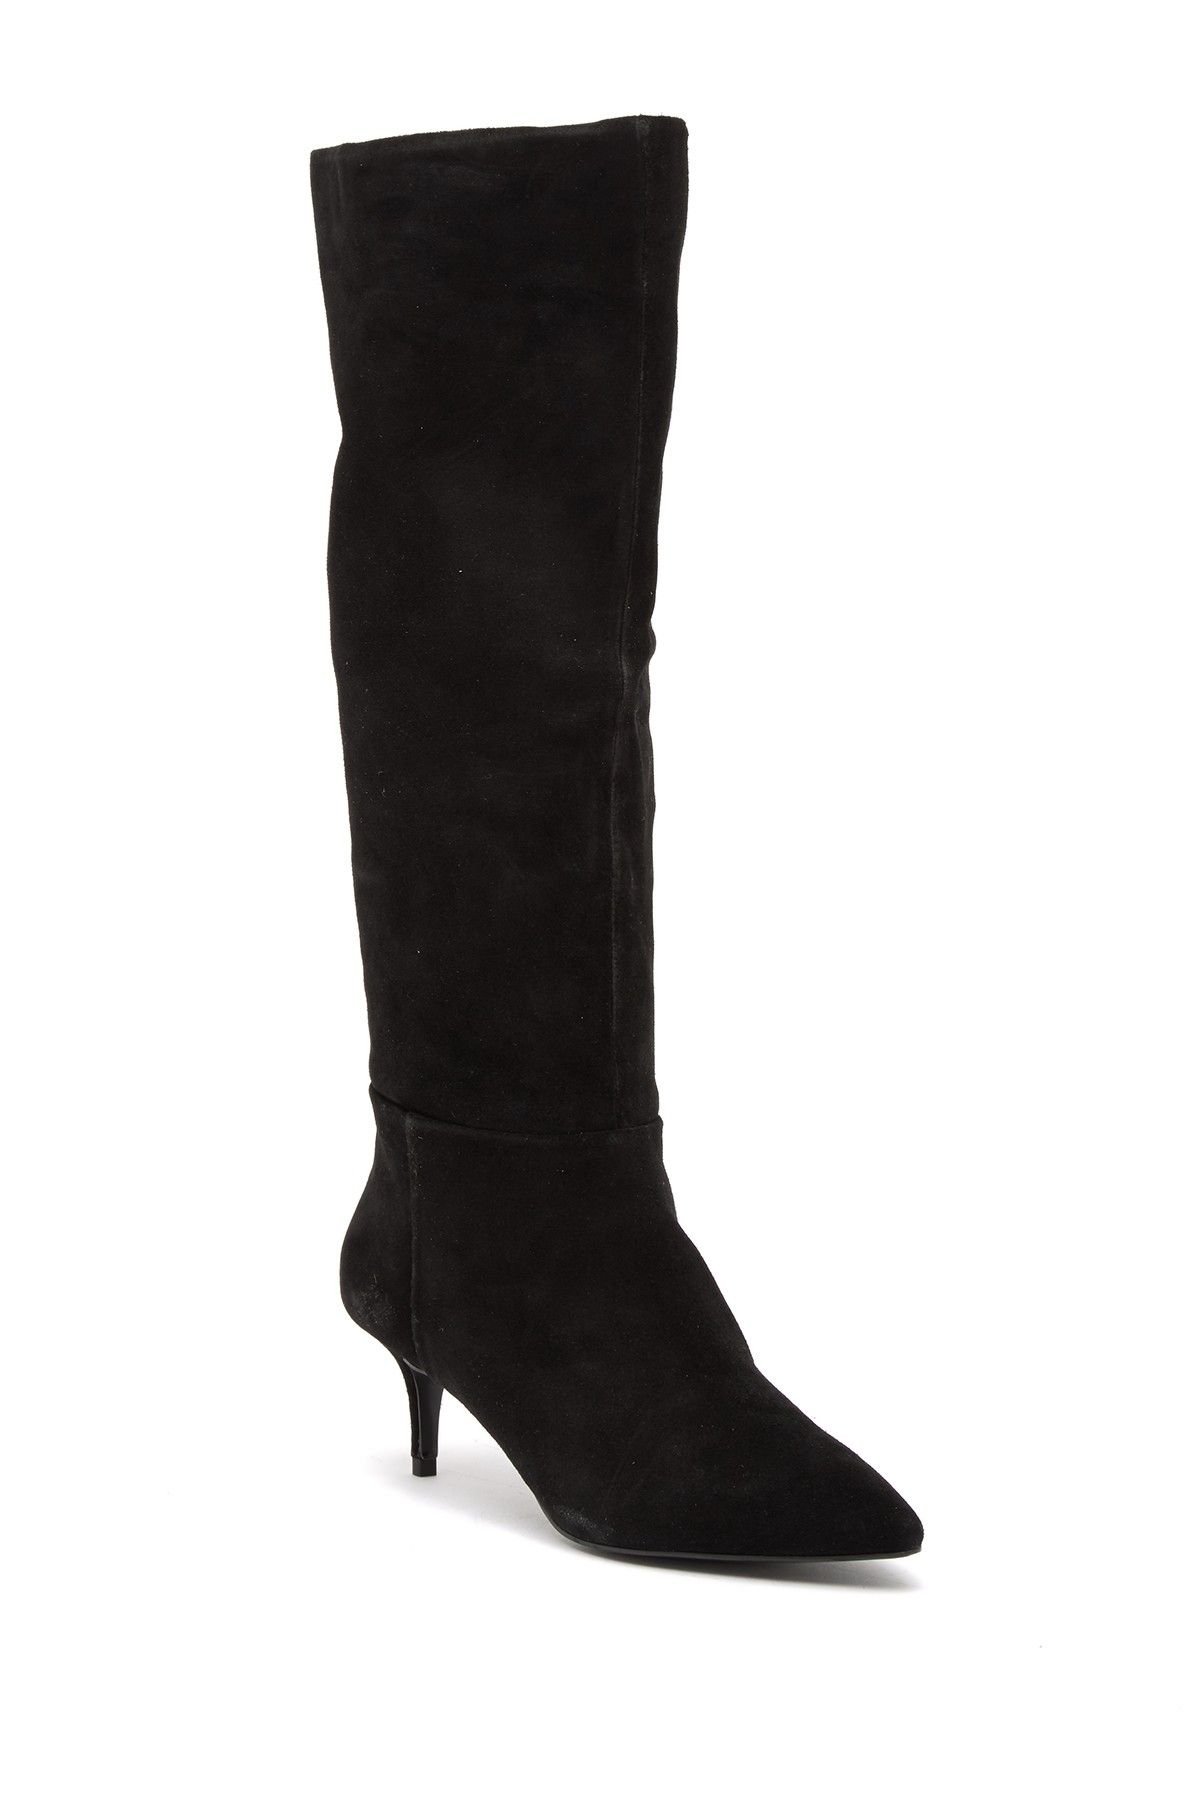 Steven By Steve Madden Kendrick Suede Kitten Heel Knee High Boot Nordstrom Rack Boots Heels High Boots